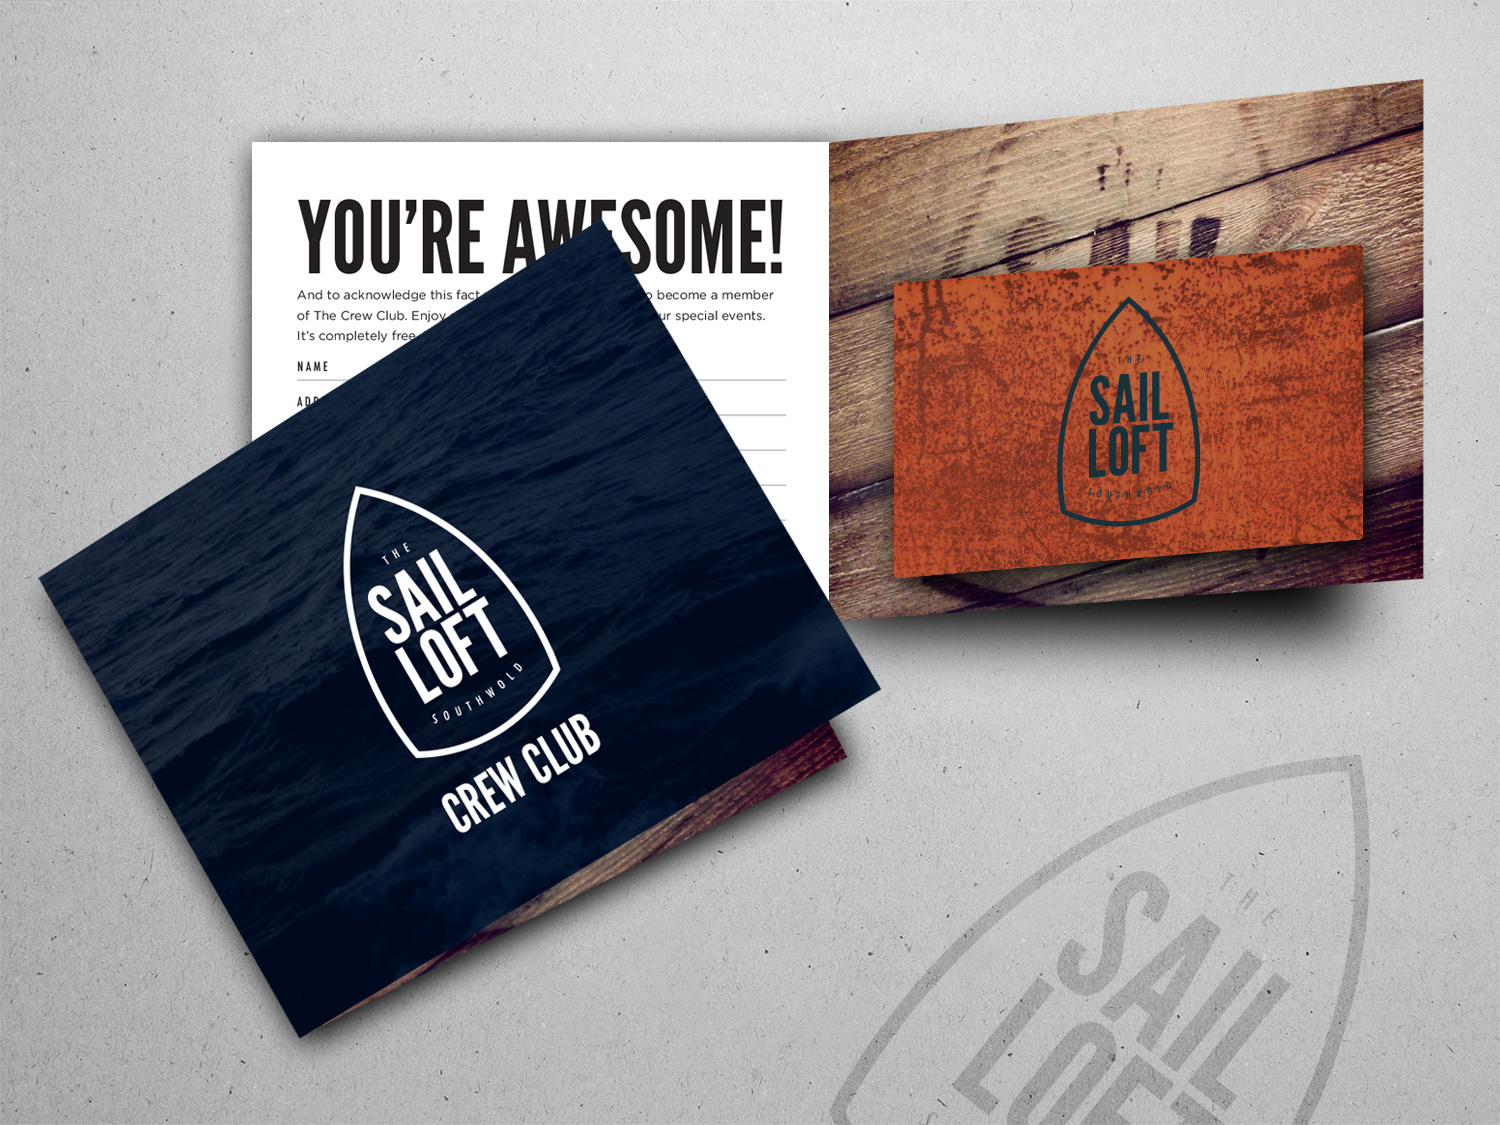 Sail Loft club stationary